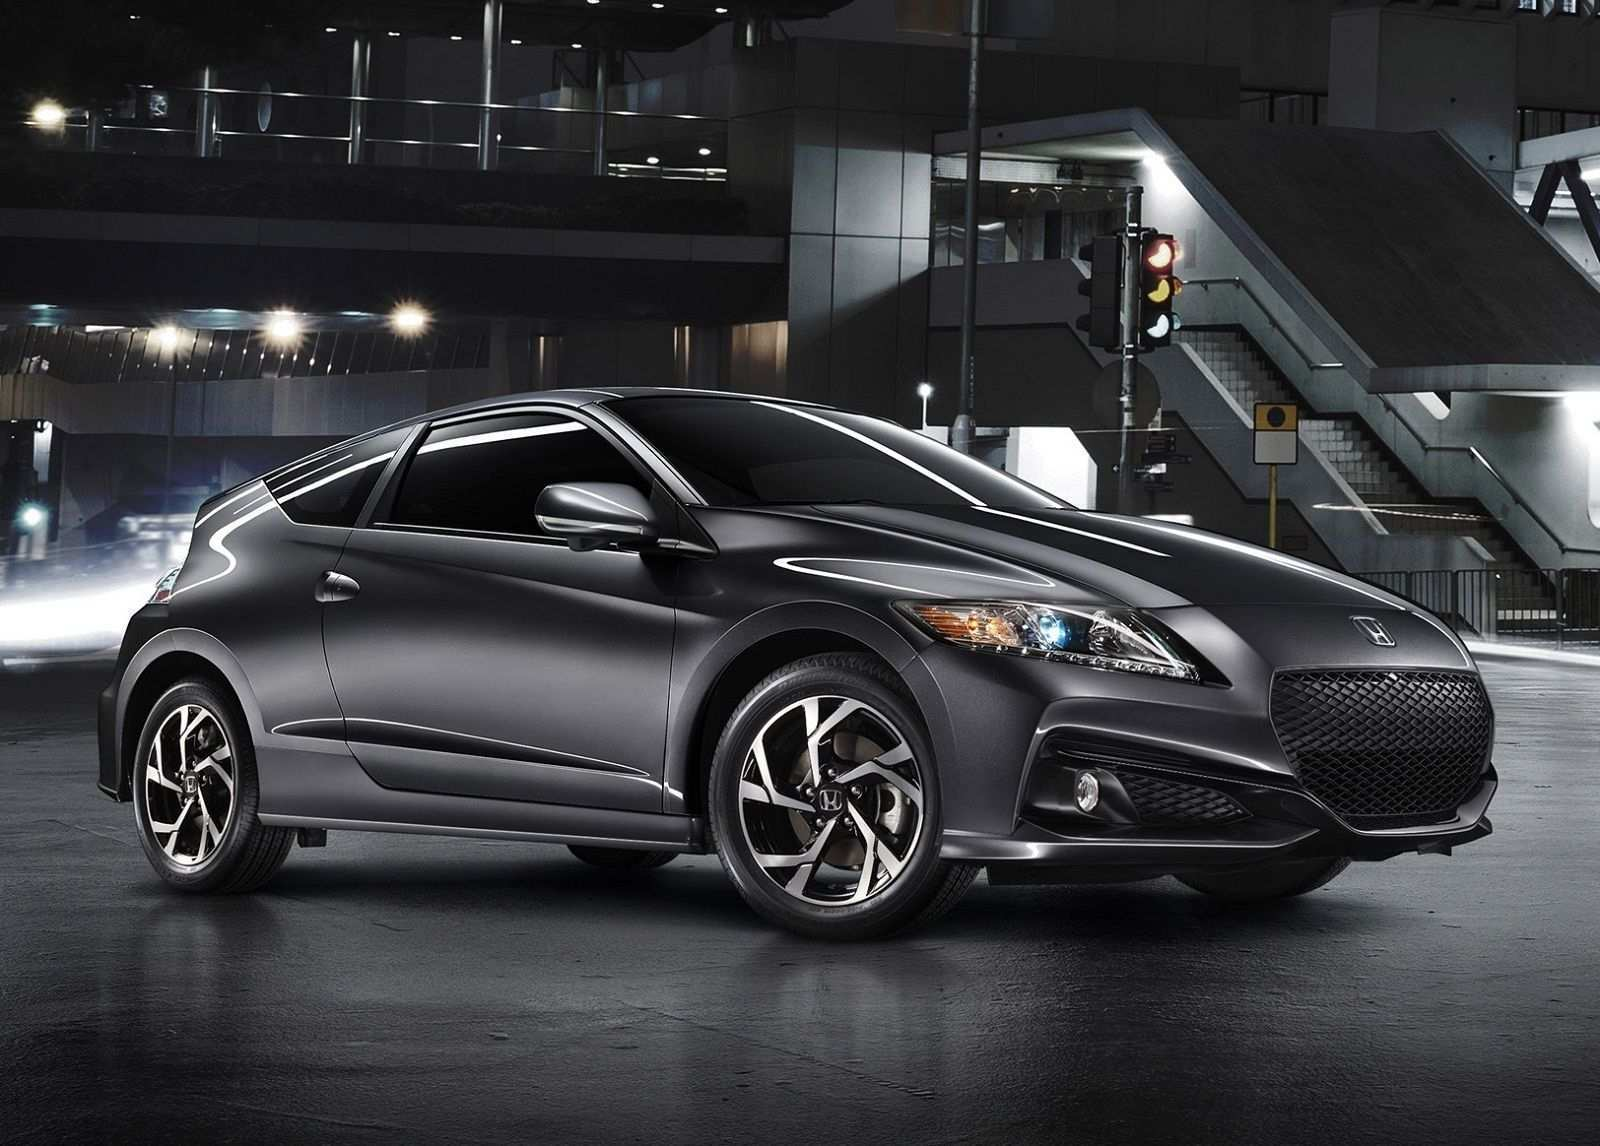 90 The Best 2019 Honda Crz Performance